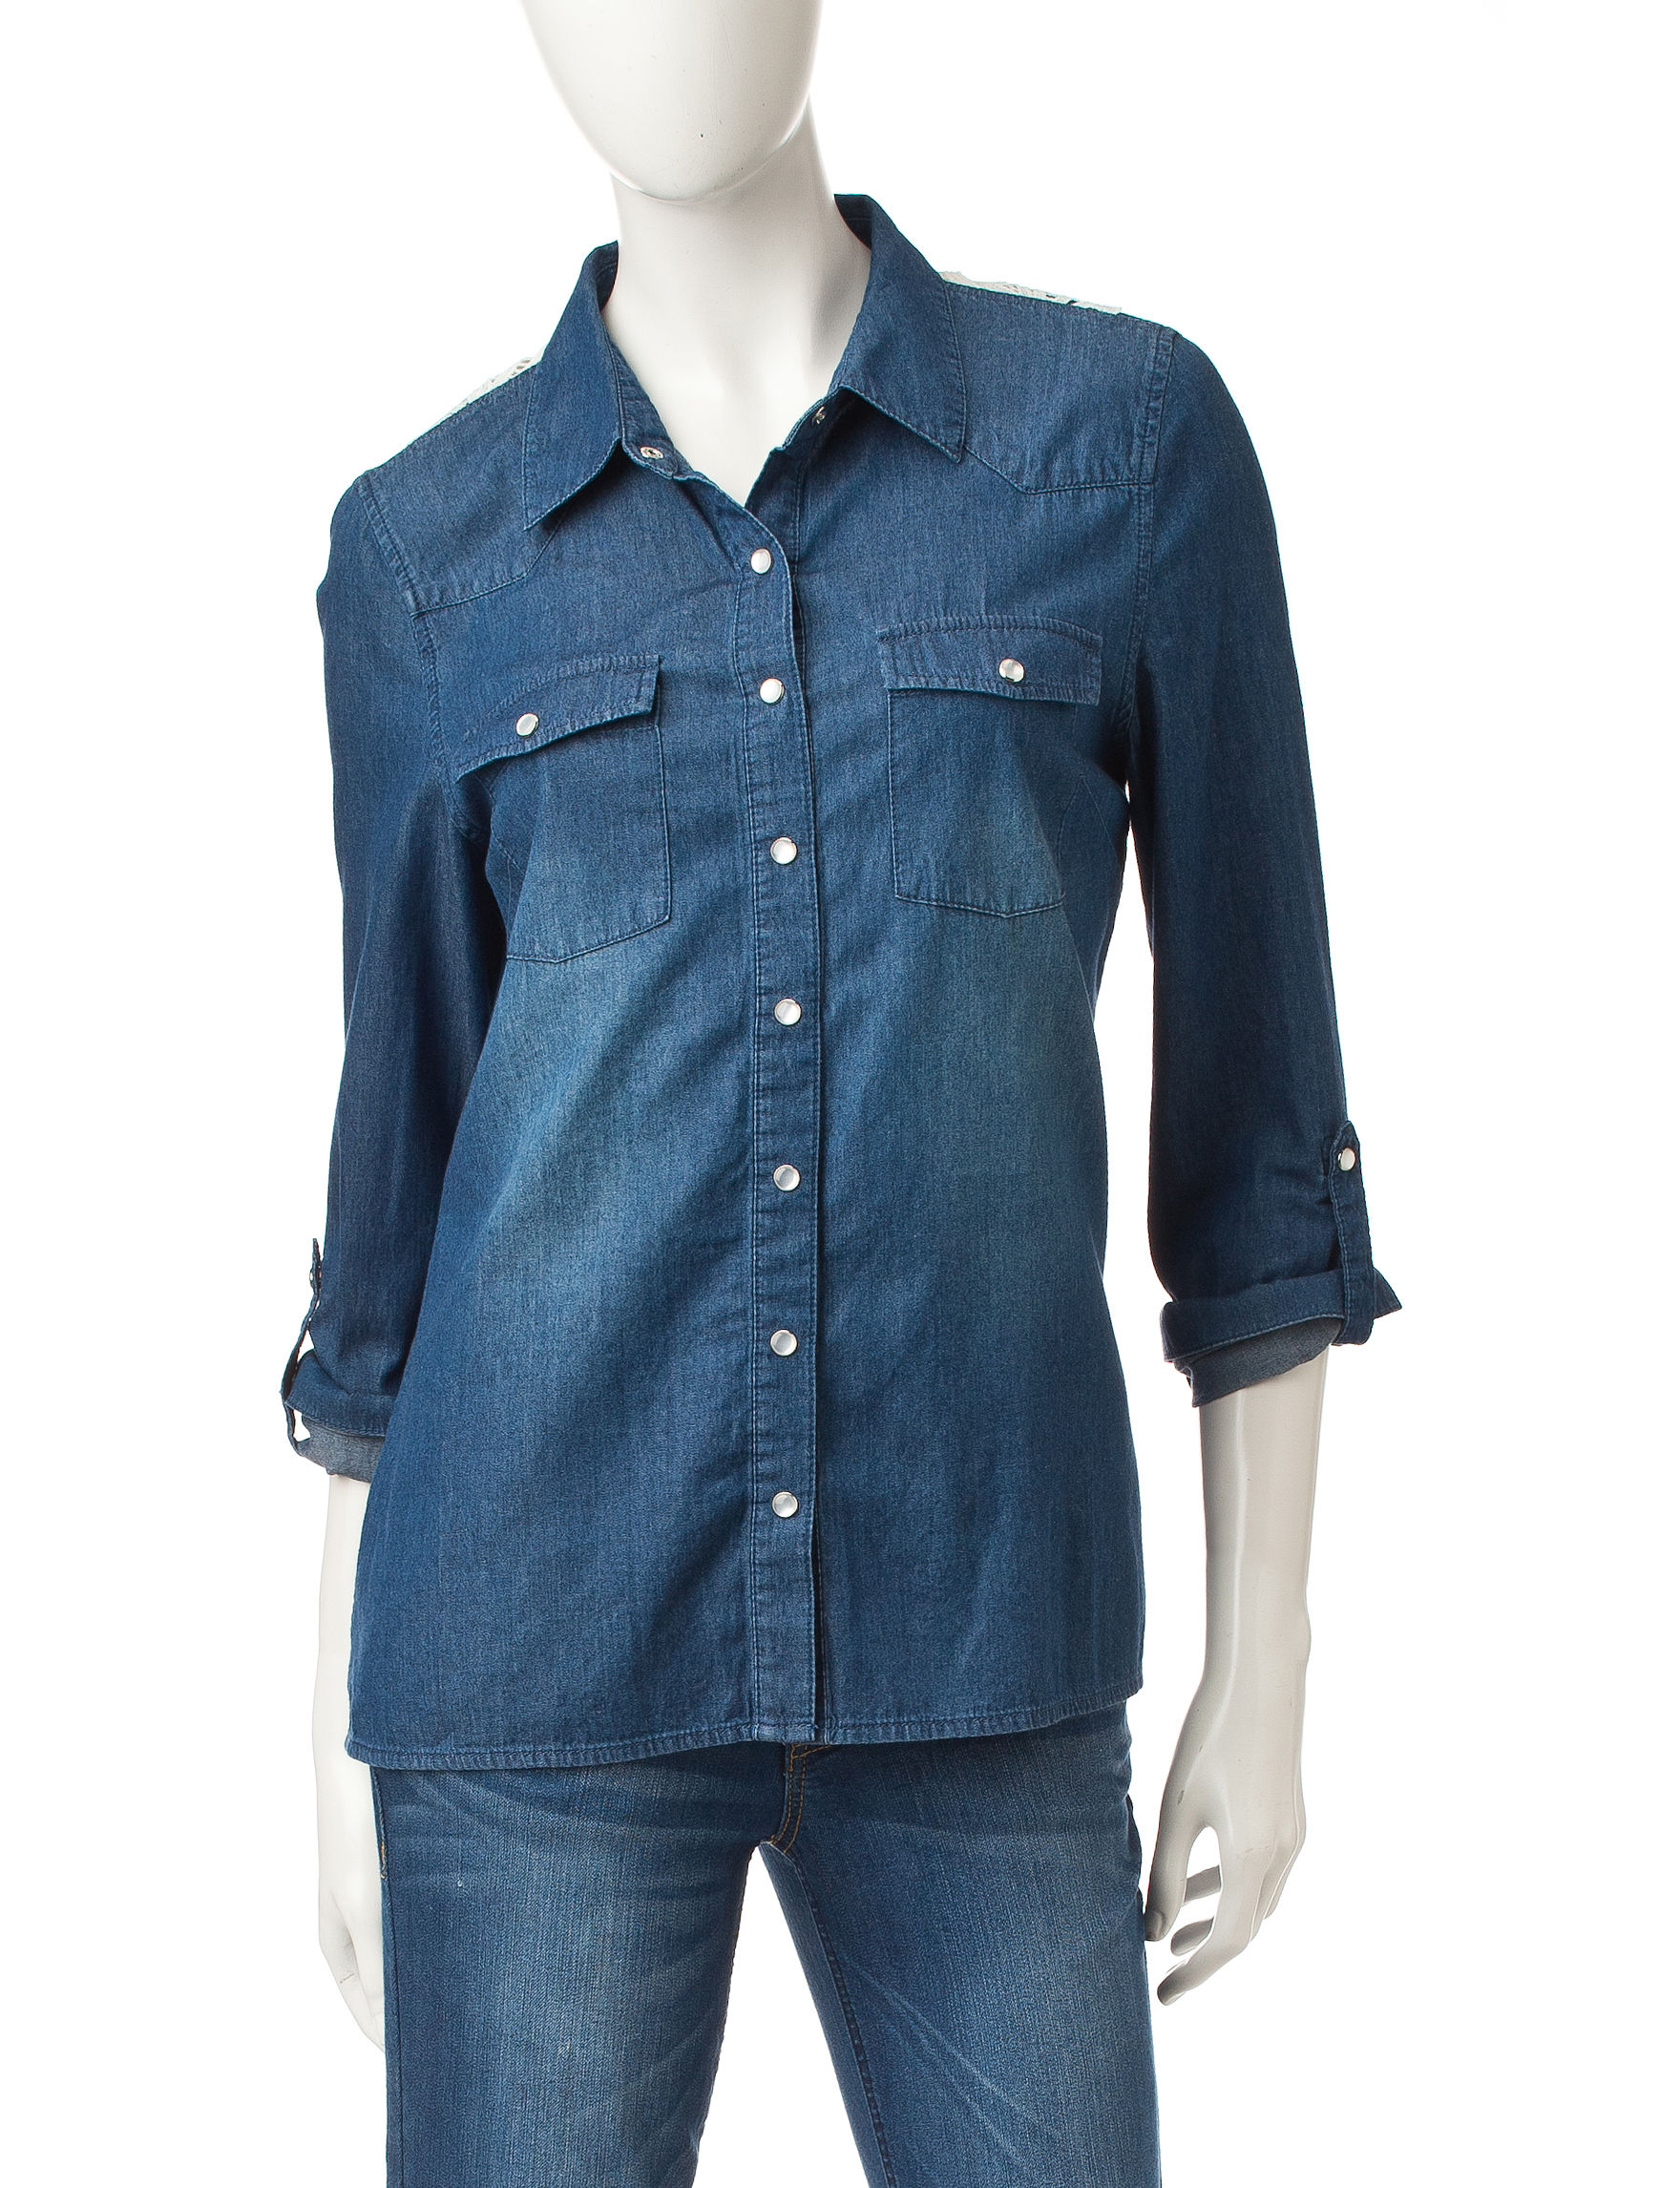 Justify Dark Wash Shirts & Blouses